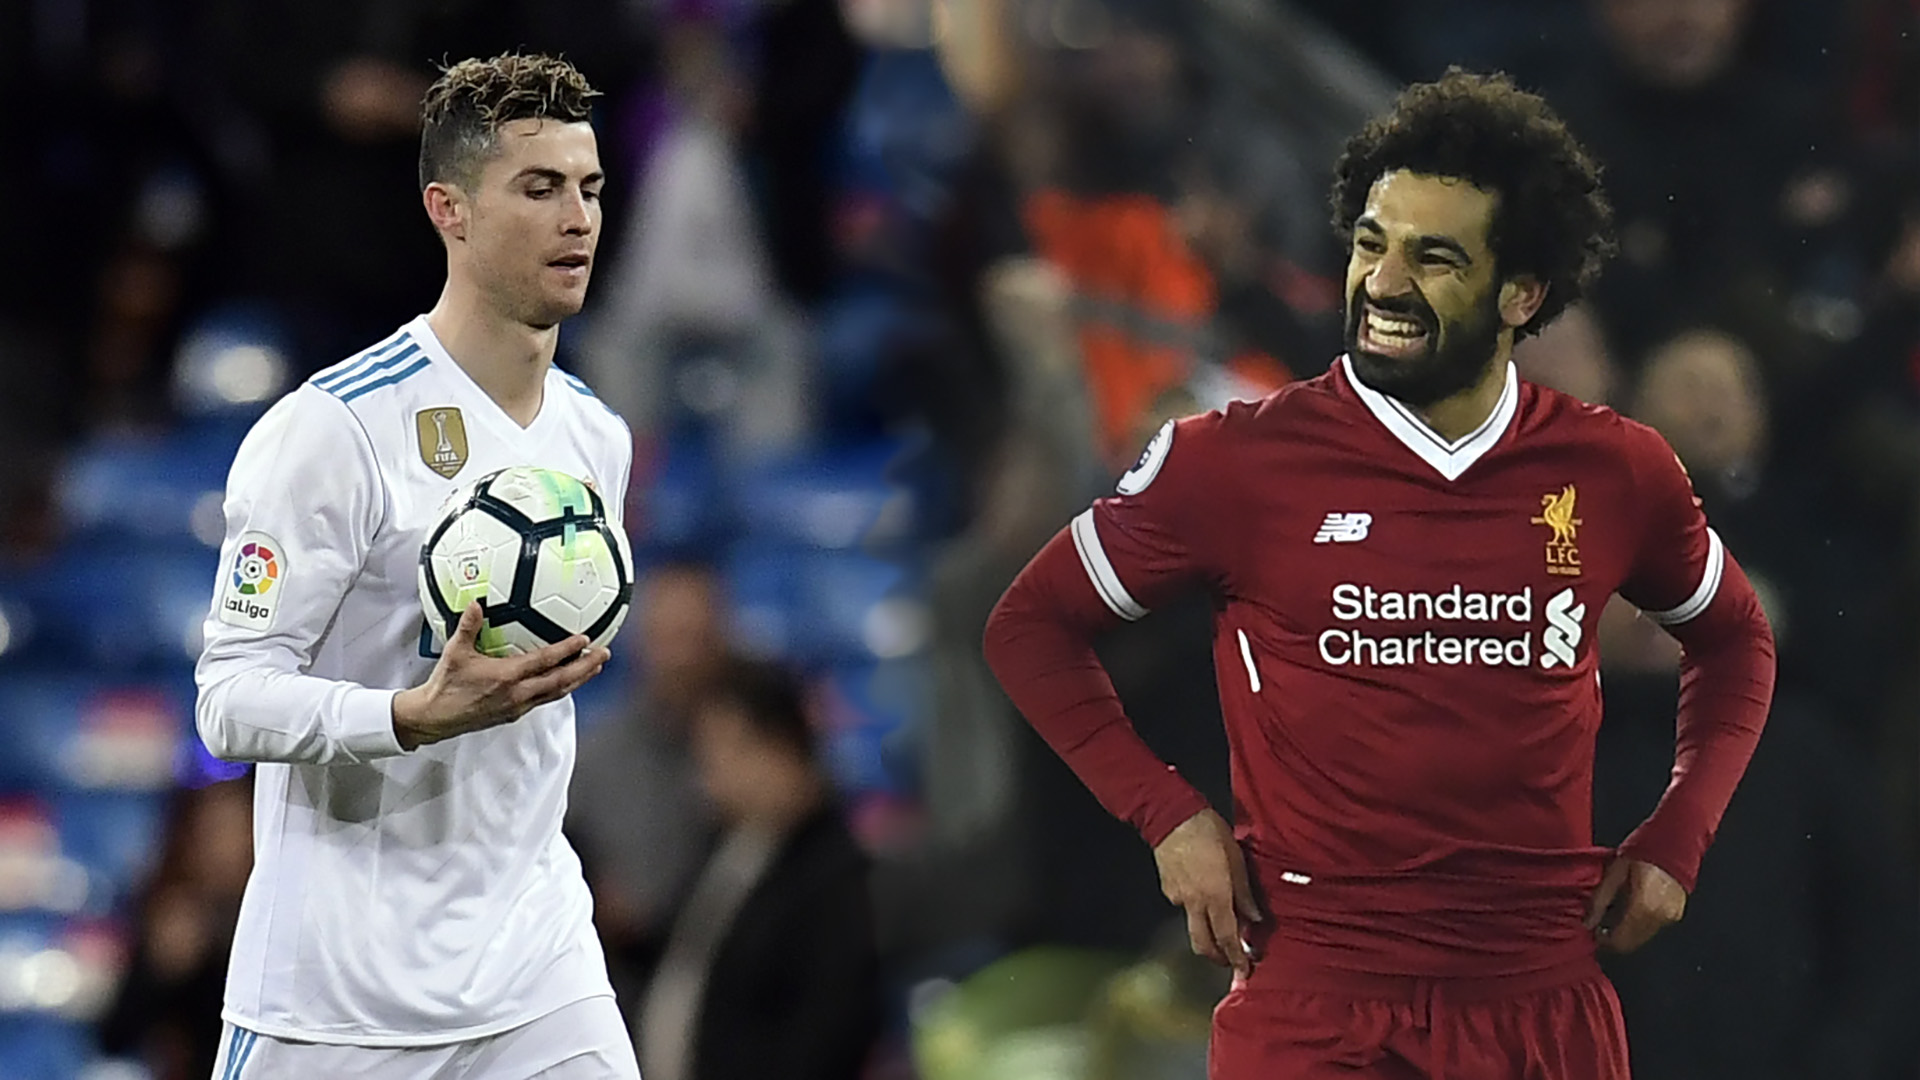 Egypt coach Cuper: Liverpool striker among the best - but not THE best